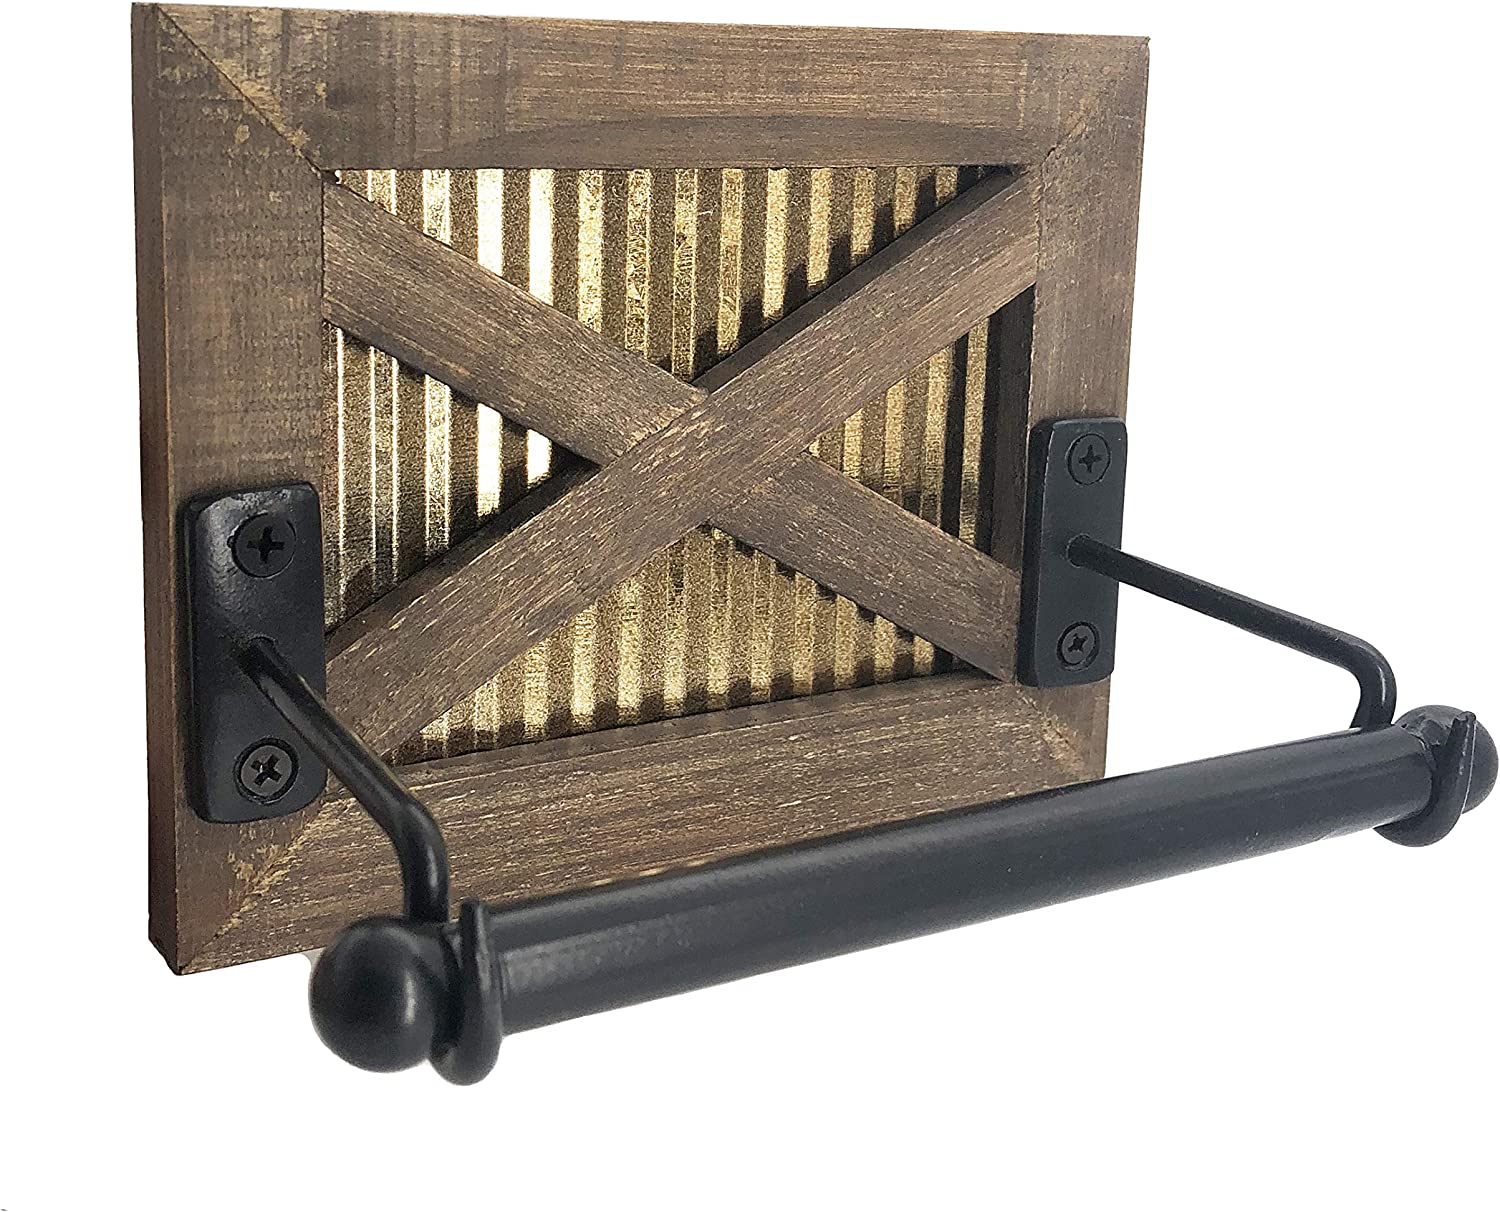 Autumn Alley Rustic Farmhouse Barn Door Toilet Paper Holder | Constructed of Warm Brown Wood, Corrugated Metal and Black Metal | Adds Functional Farmhouse Charm to Your Bathroom